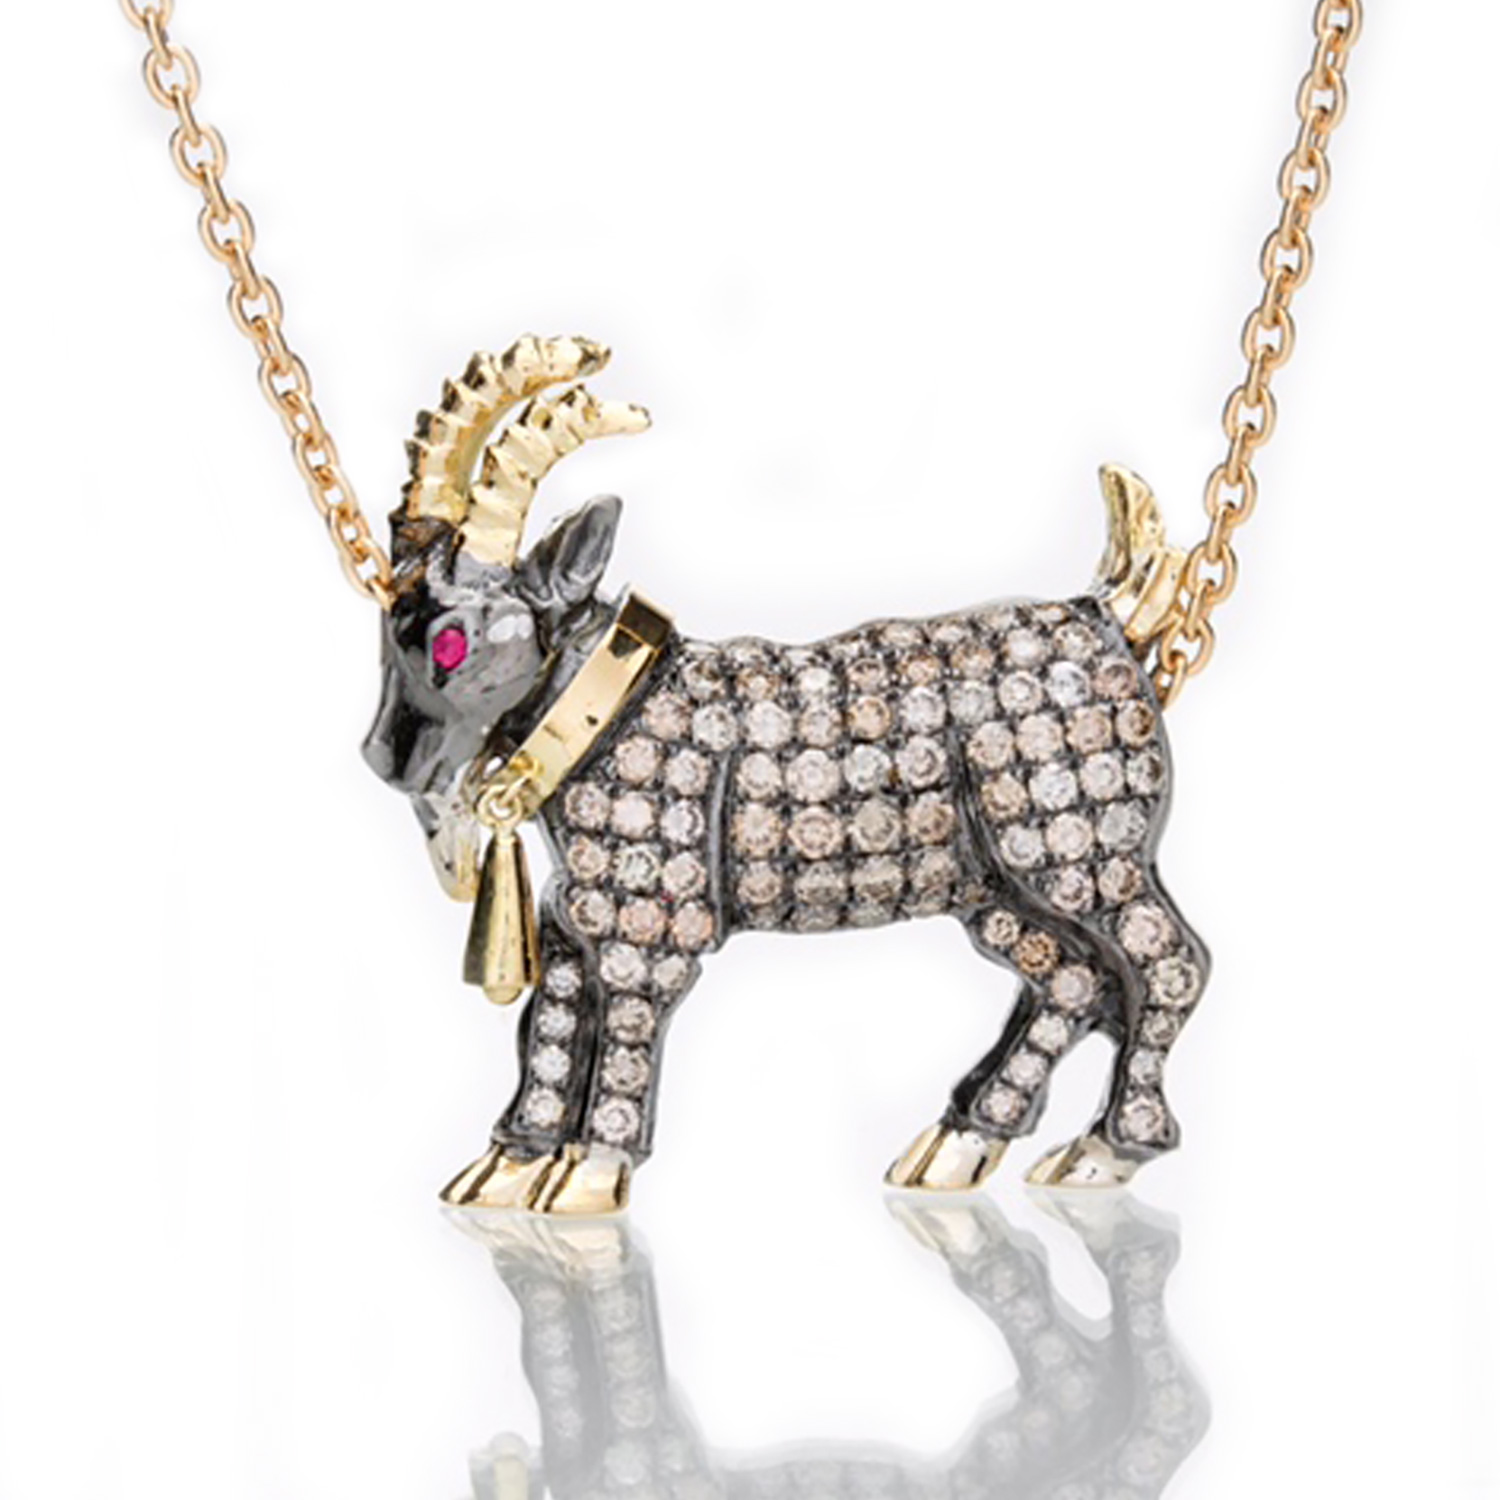 Billy Goat Diamond Necklace In Gold And Silver By Nayla Shami